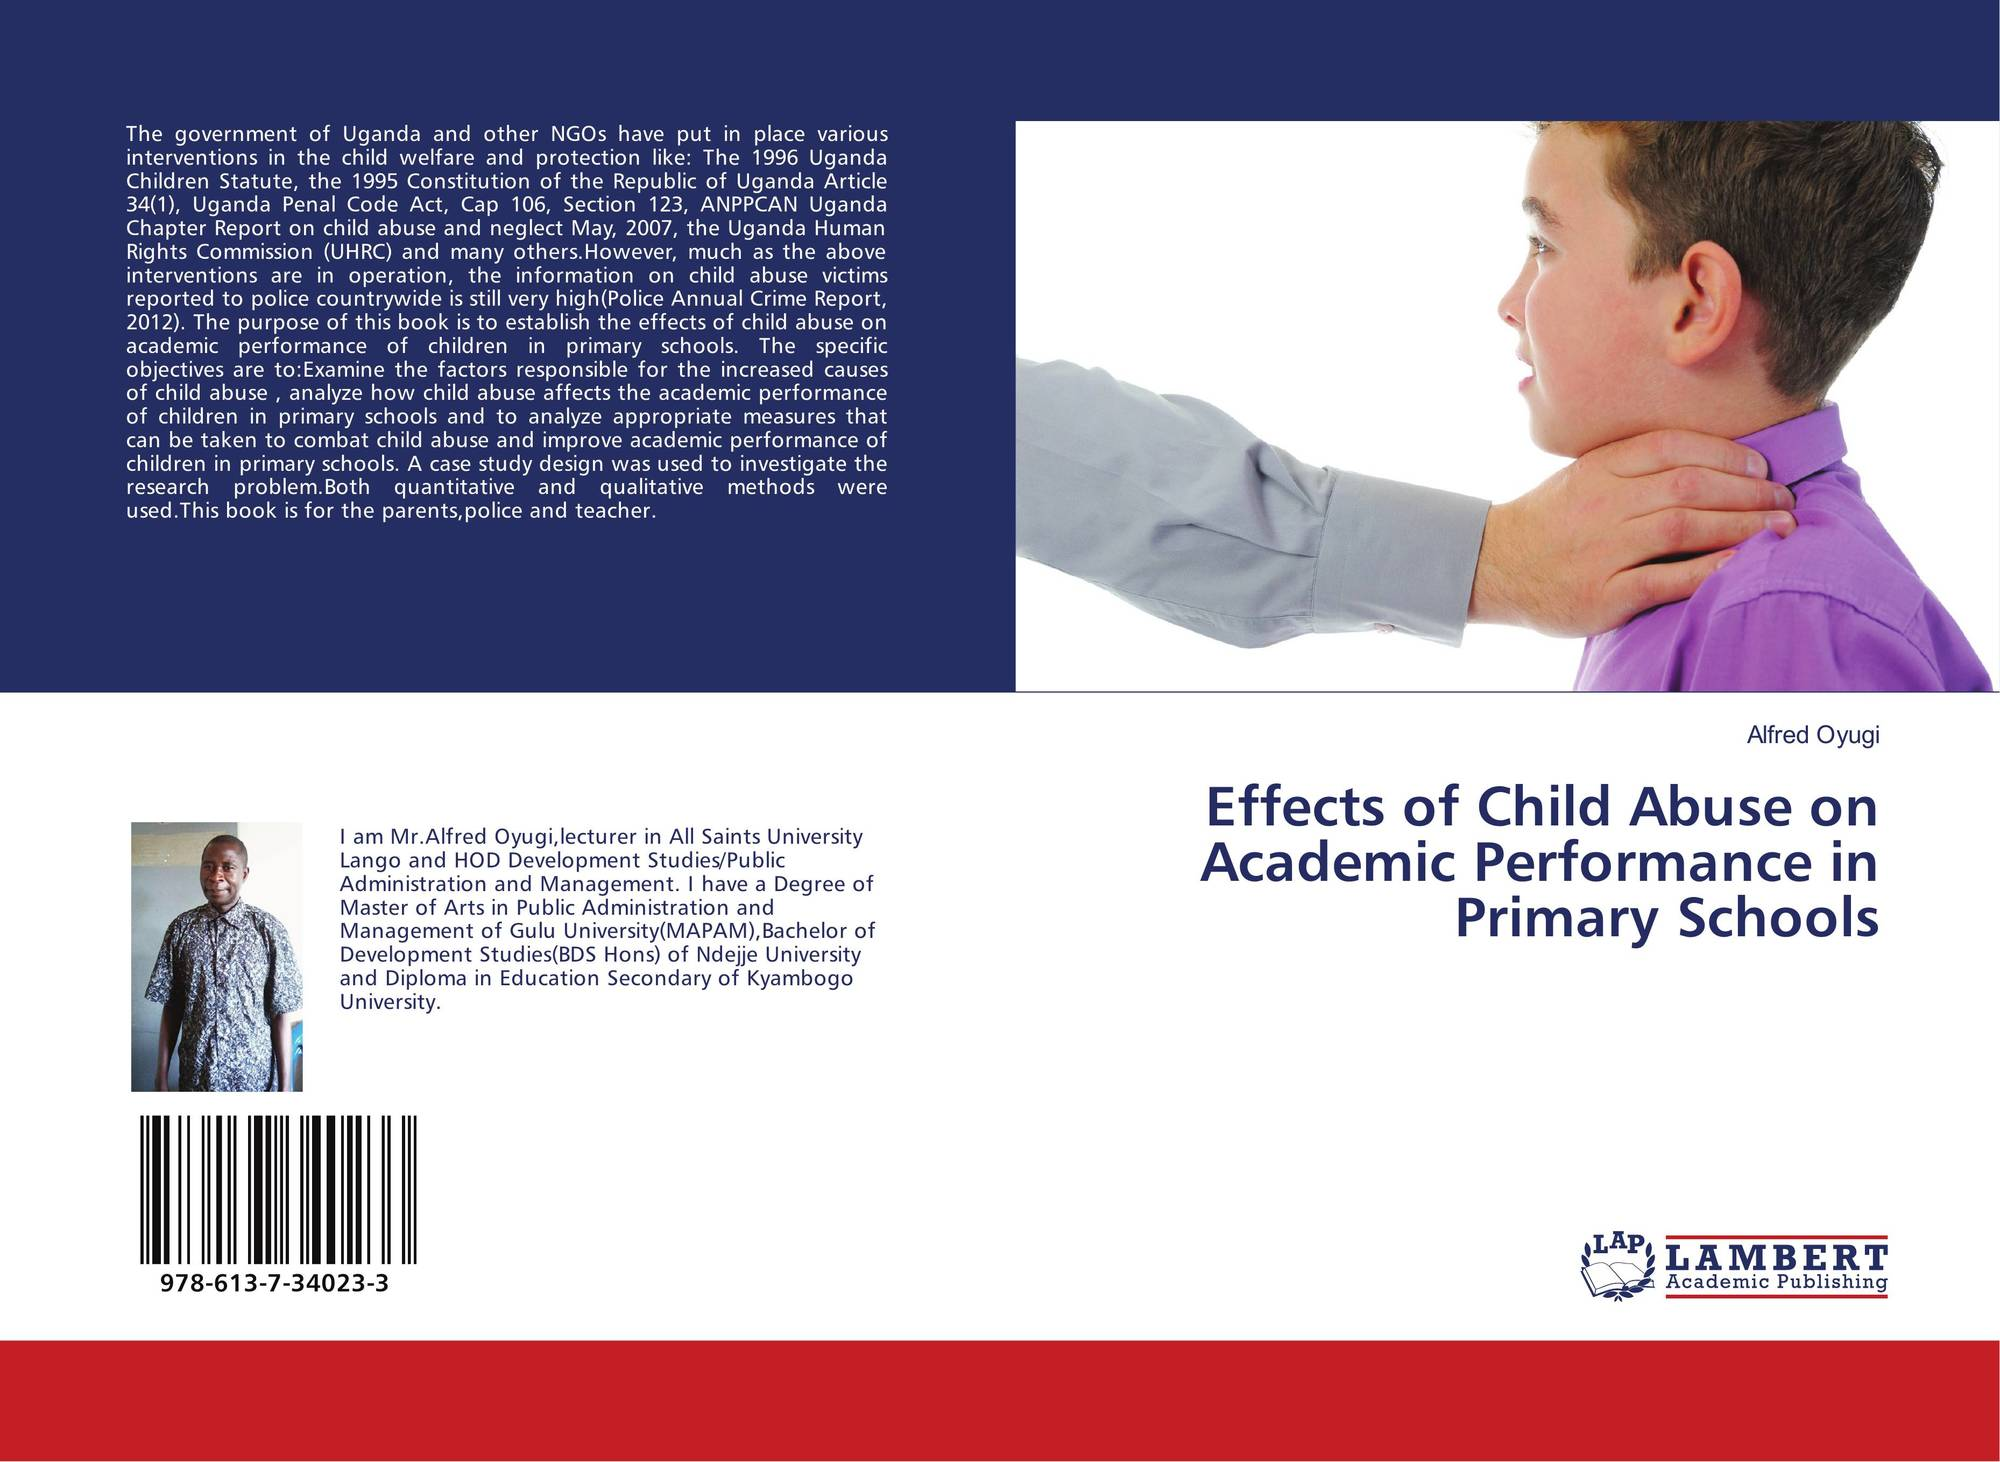 effects of child labour on academic performance Get free research paper on effect of child abuse on academic peformance of secondary school studentsproject topics and materials in nigeria this is approved for students in accountancy, business, computer science, economics, engineering, arts.